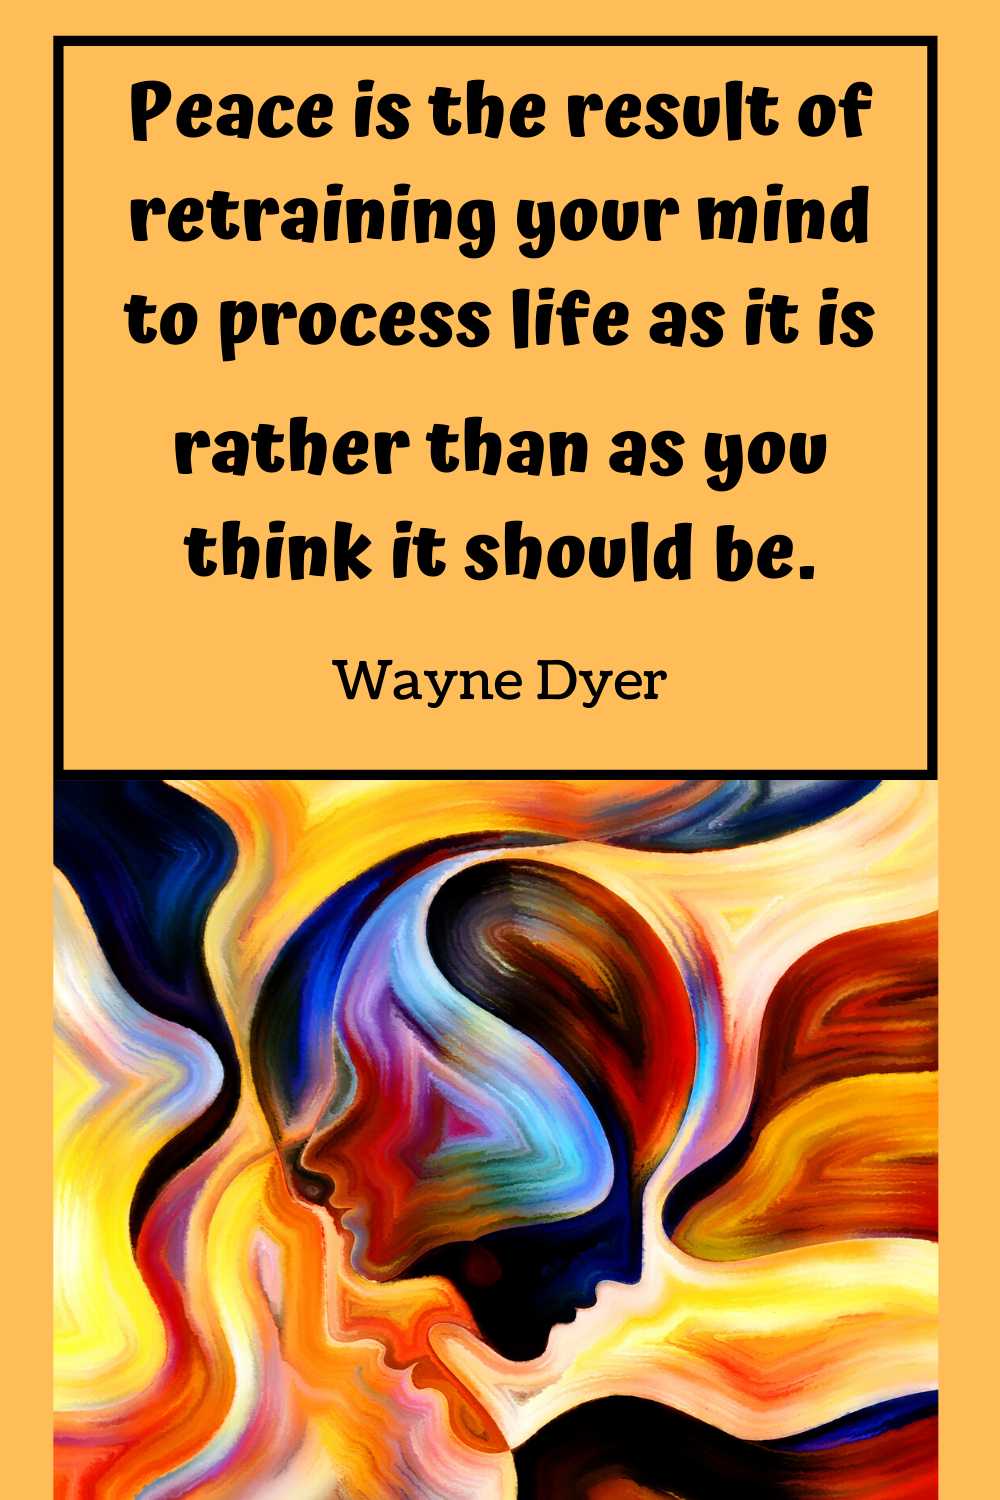 wayne dyer quotes peace